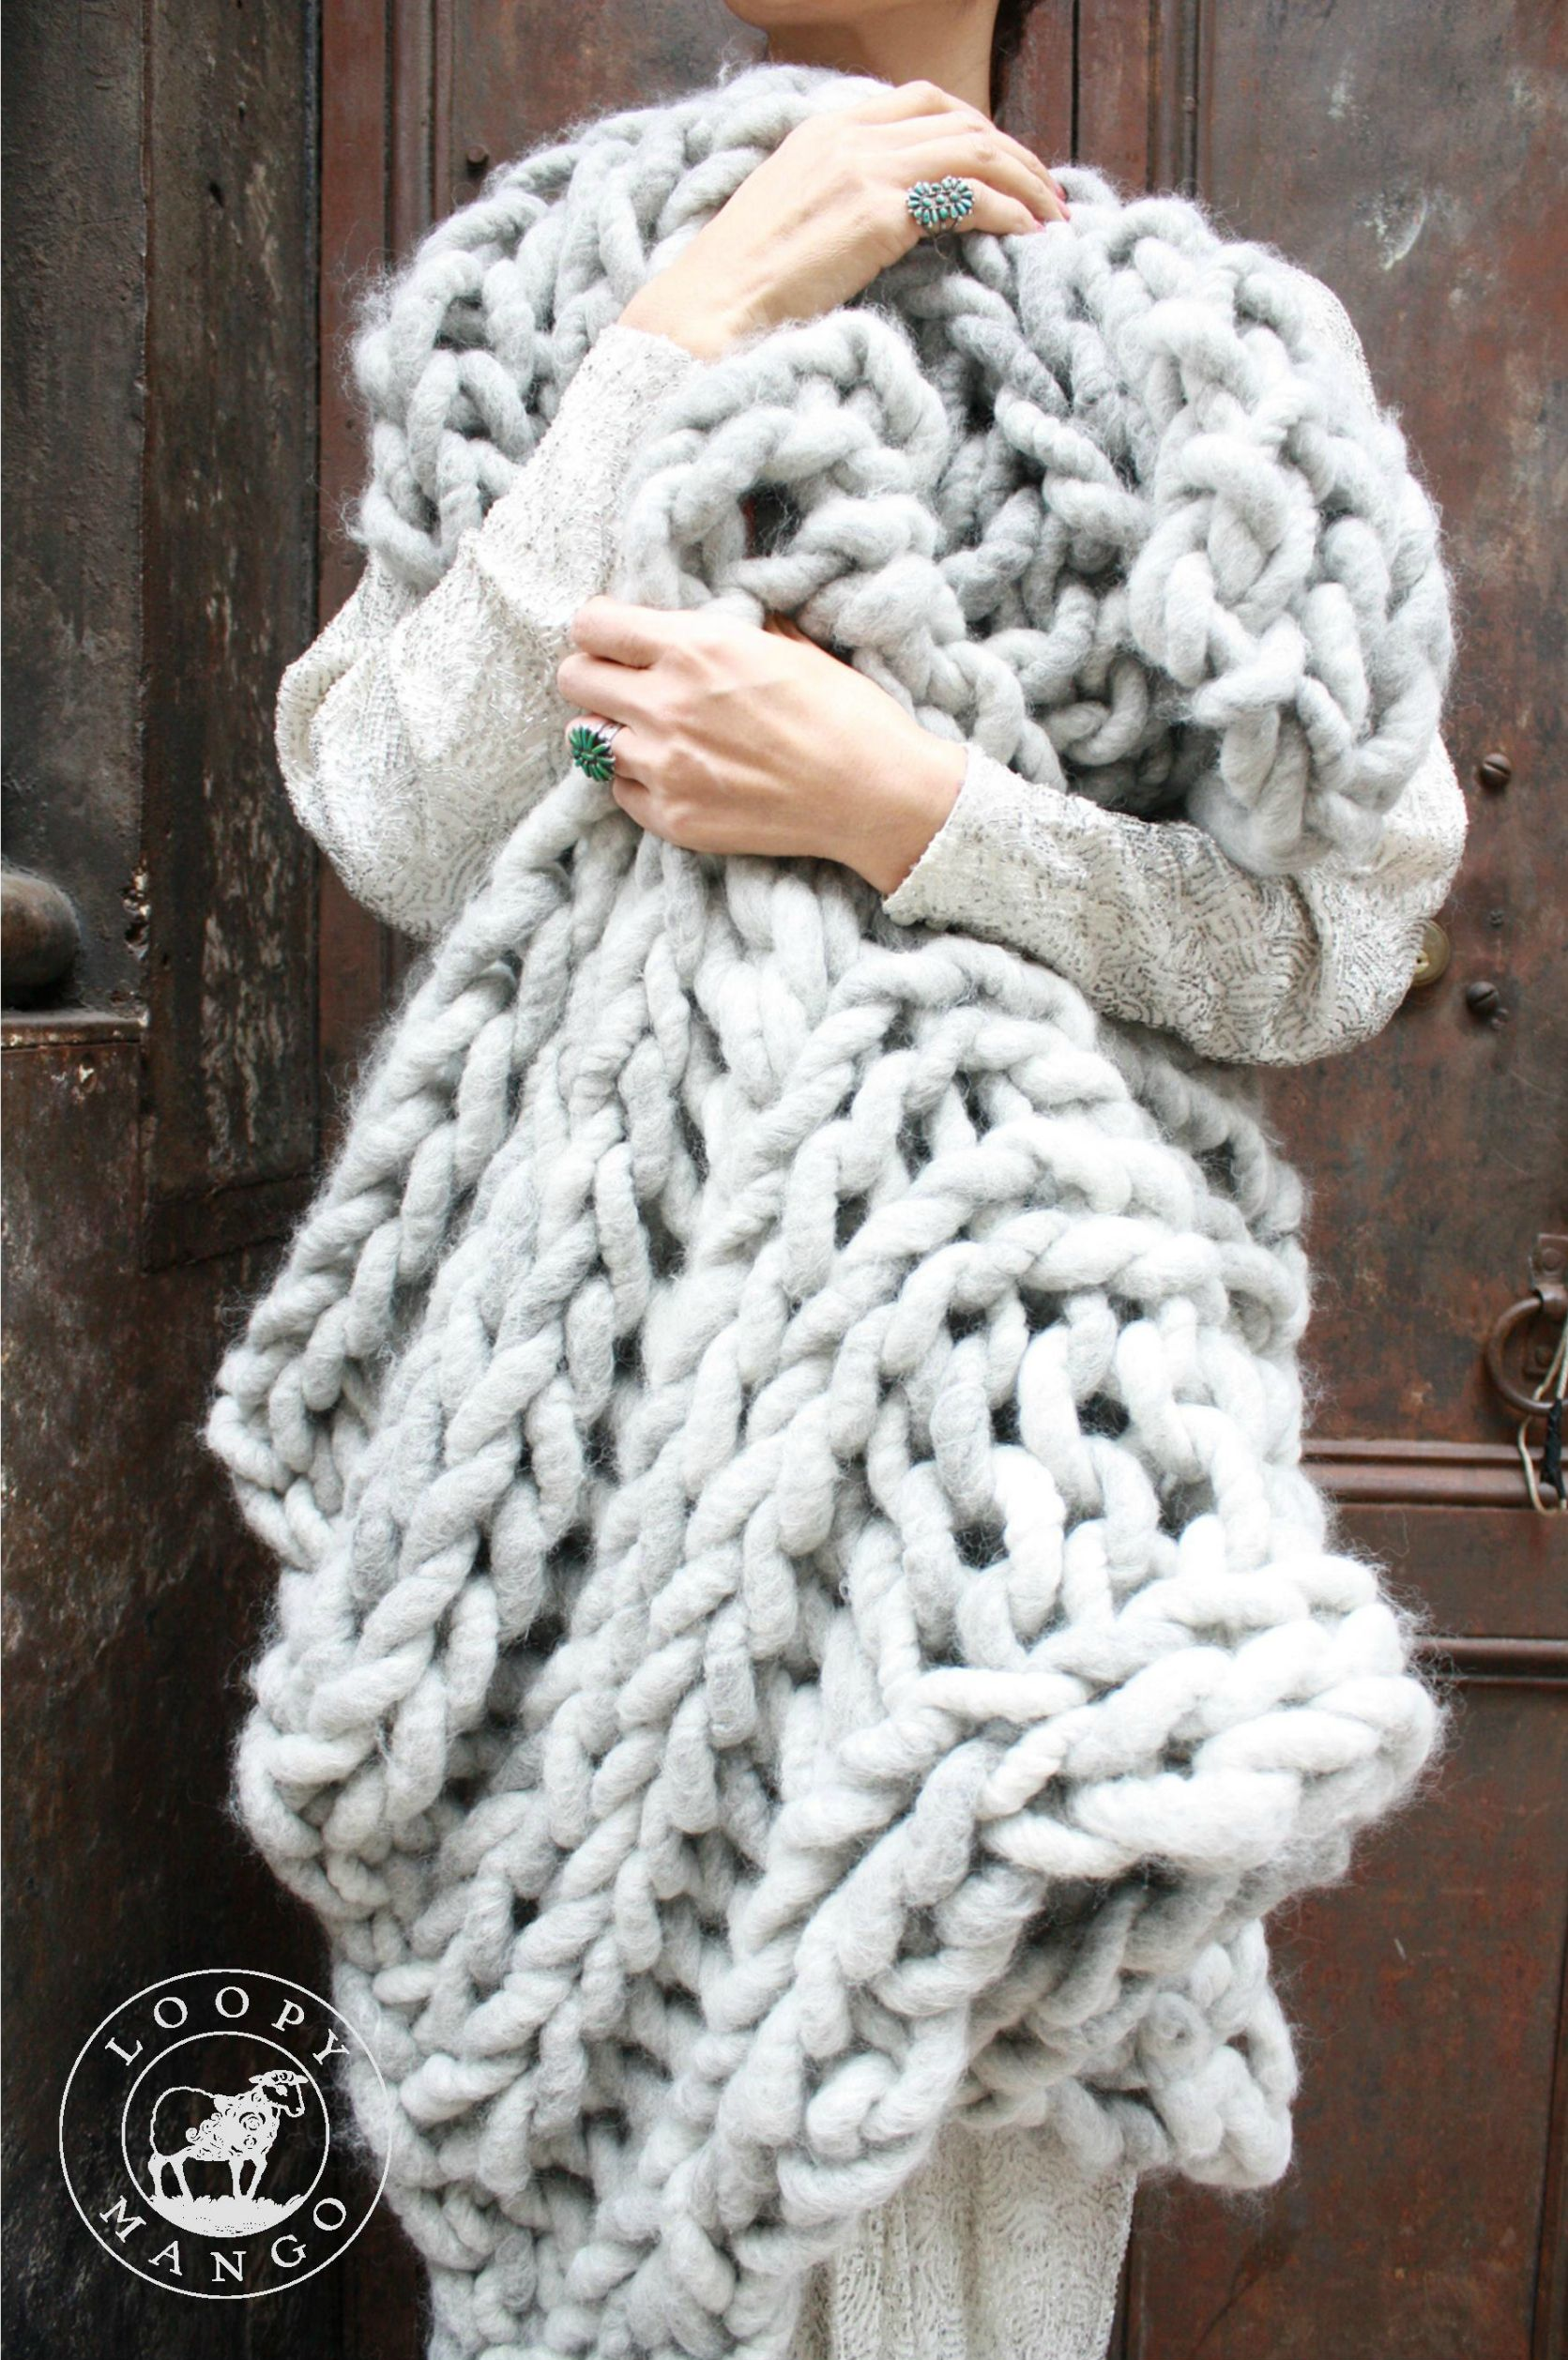 10 Cozy Home Ideas for Fall! | Yarns, Blanket and Gray